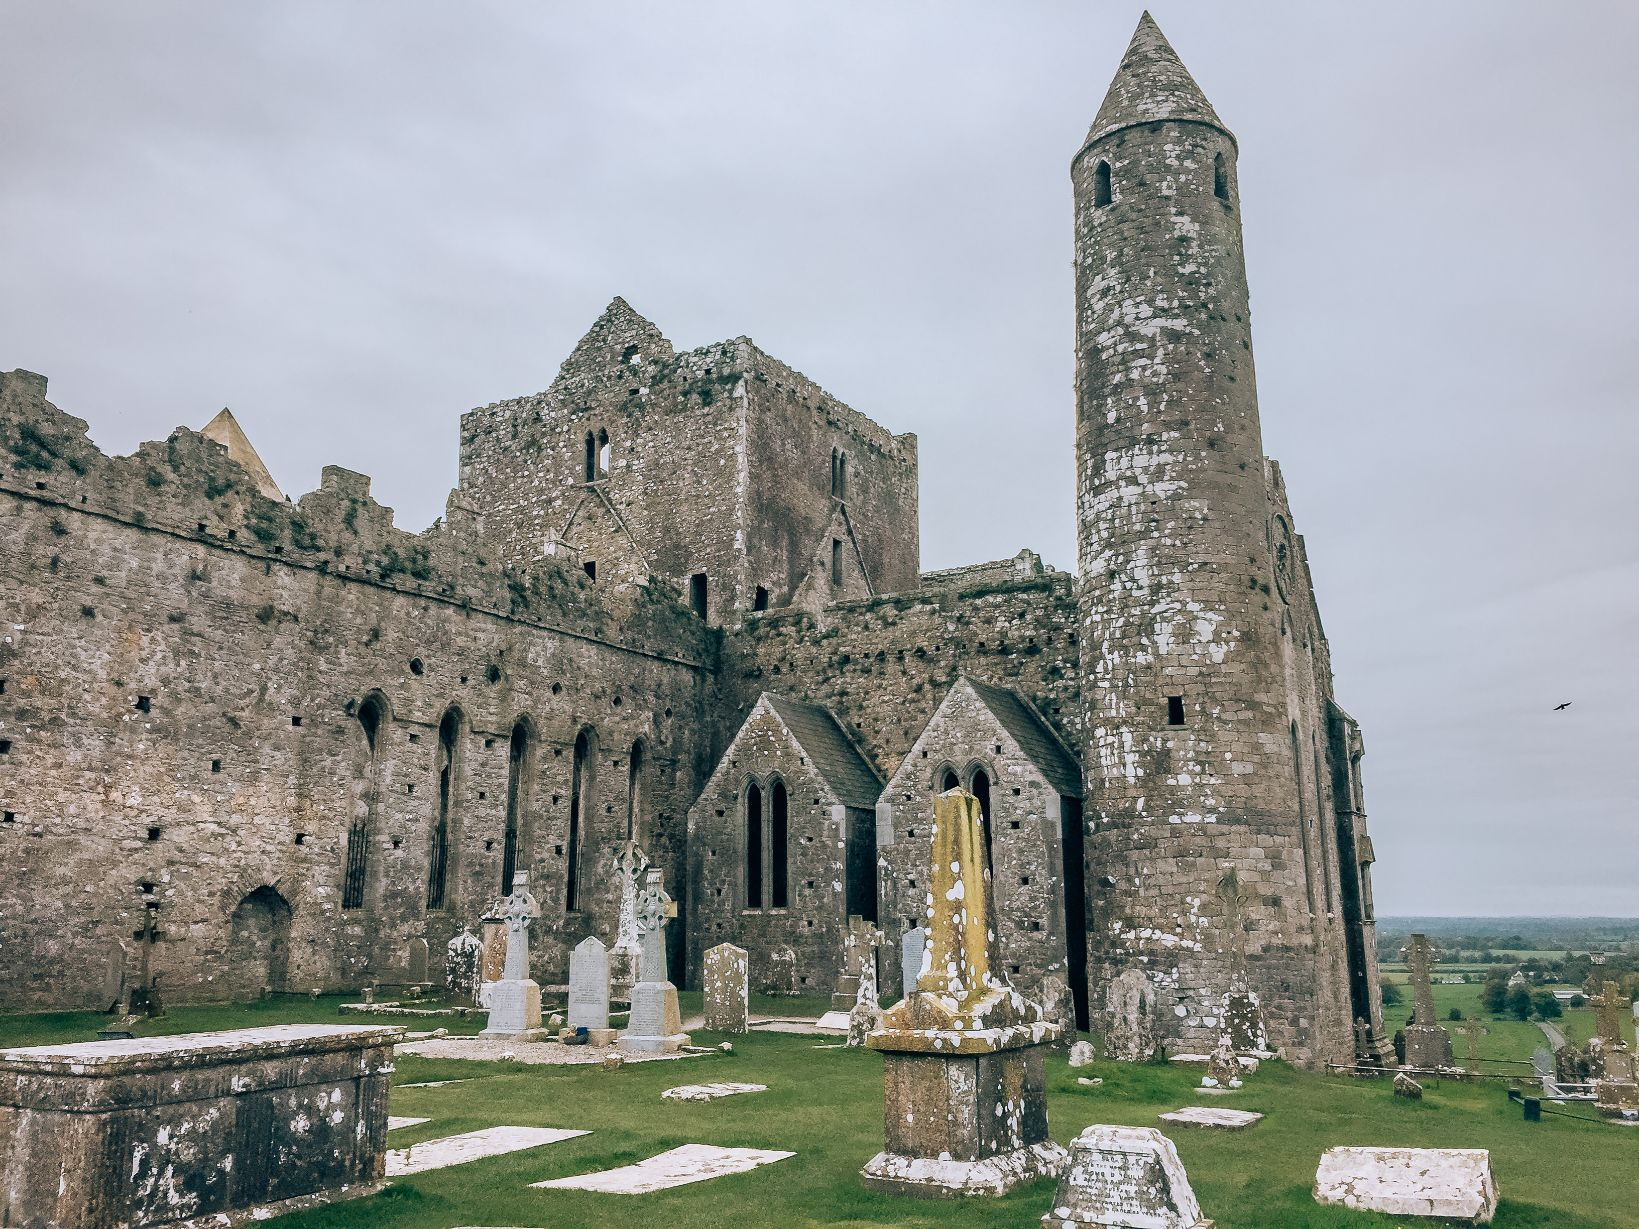 Exterior grounds of Rock of Cashel, a historic archaeological site set atop a hill